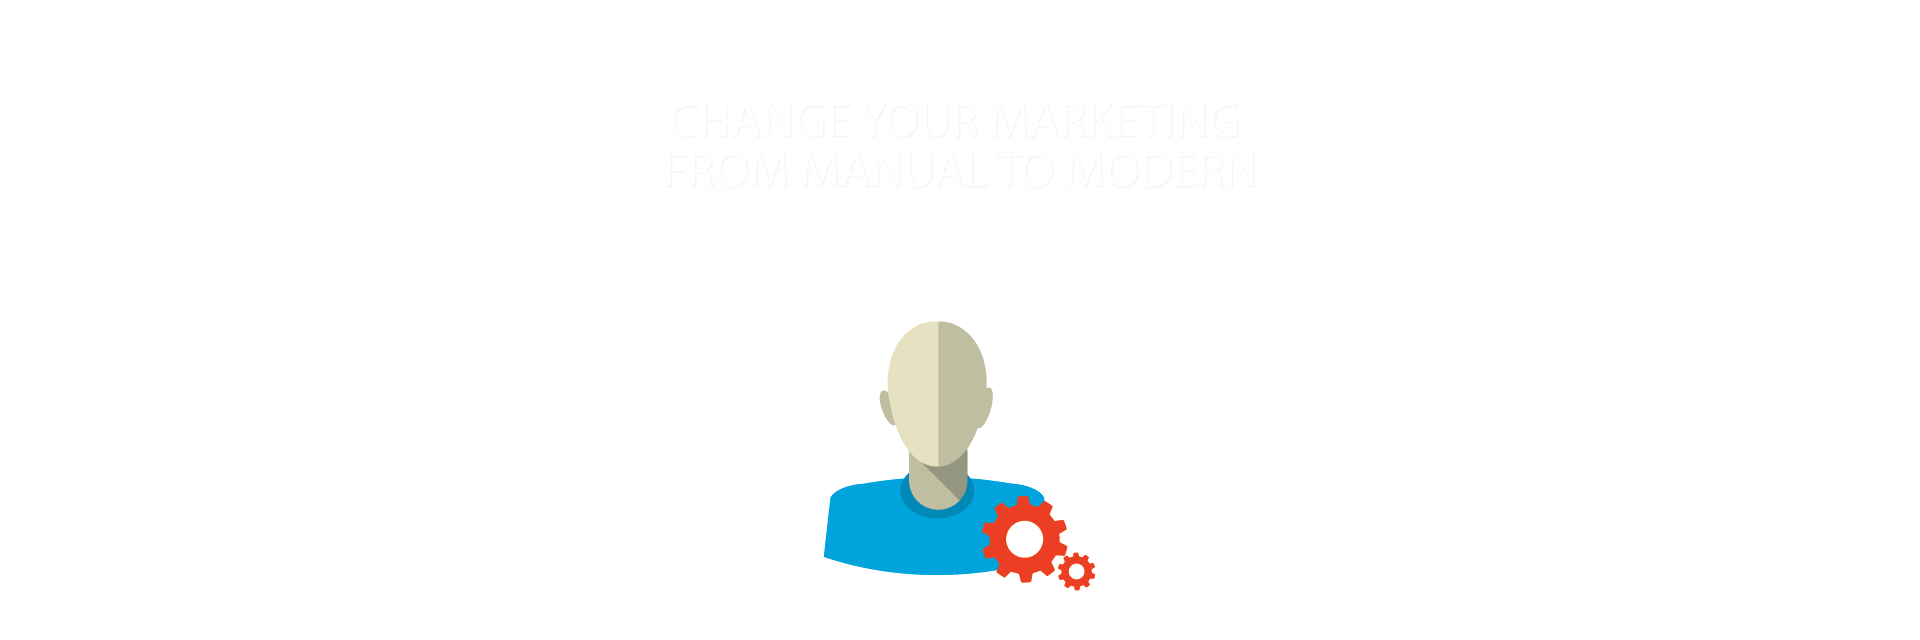 inbound marketing convert leads